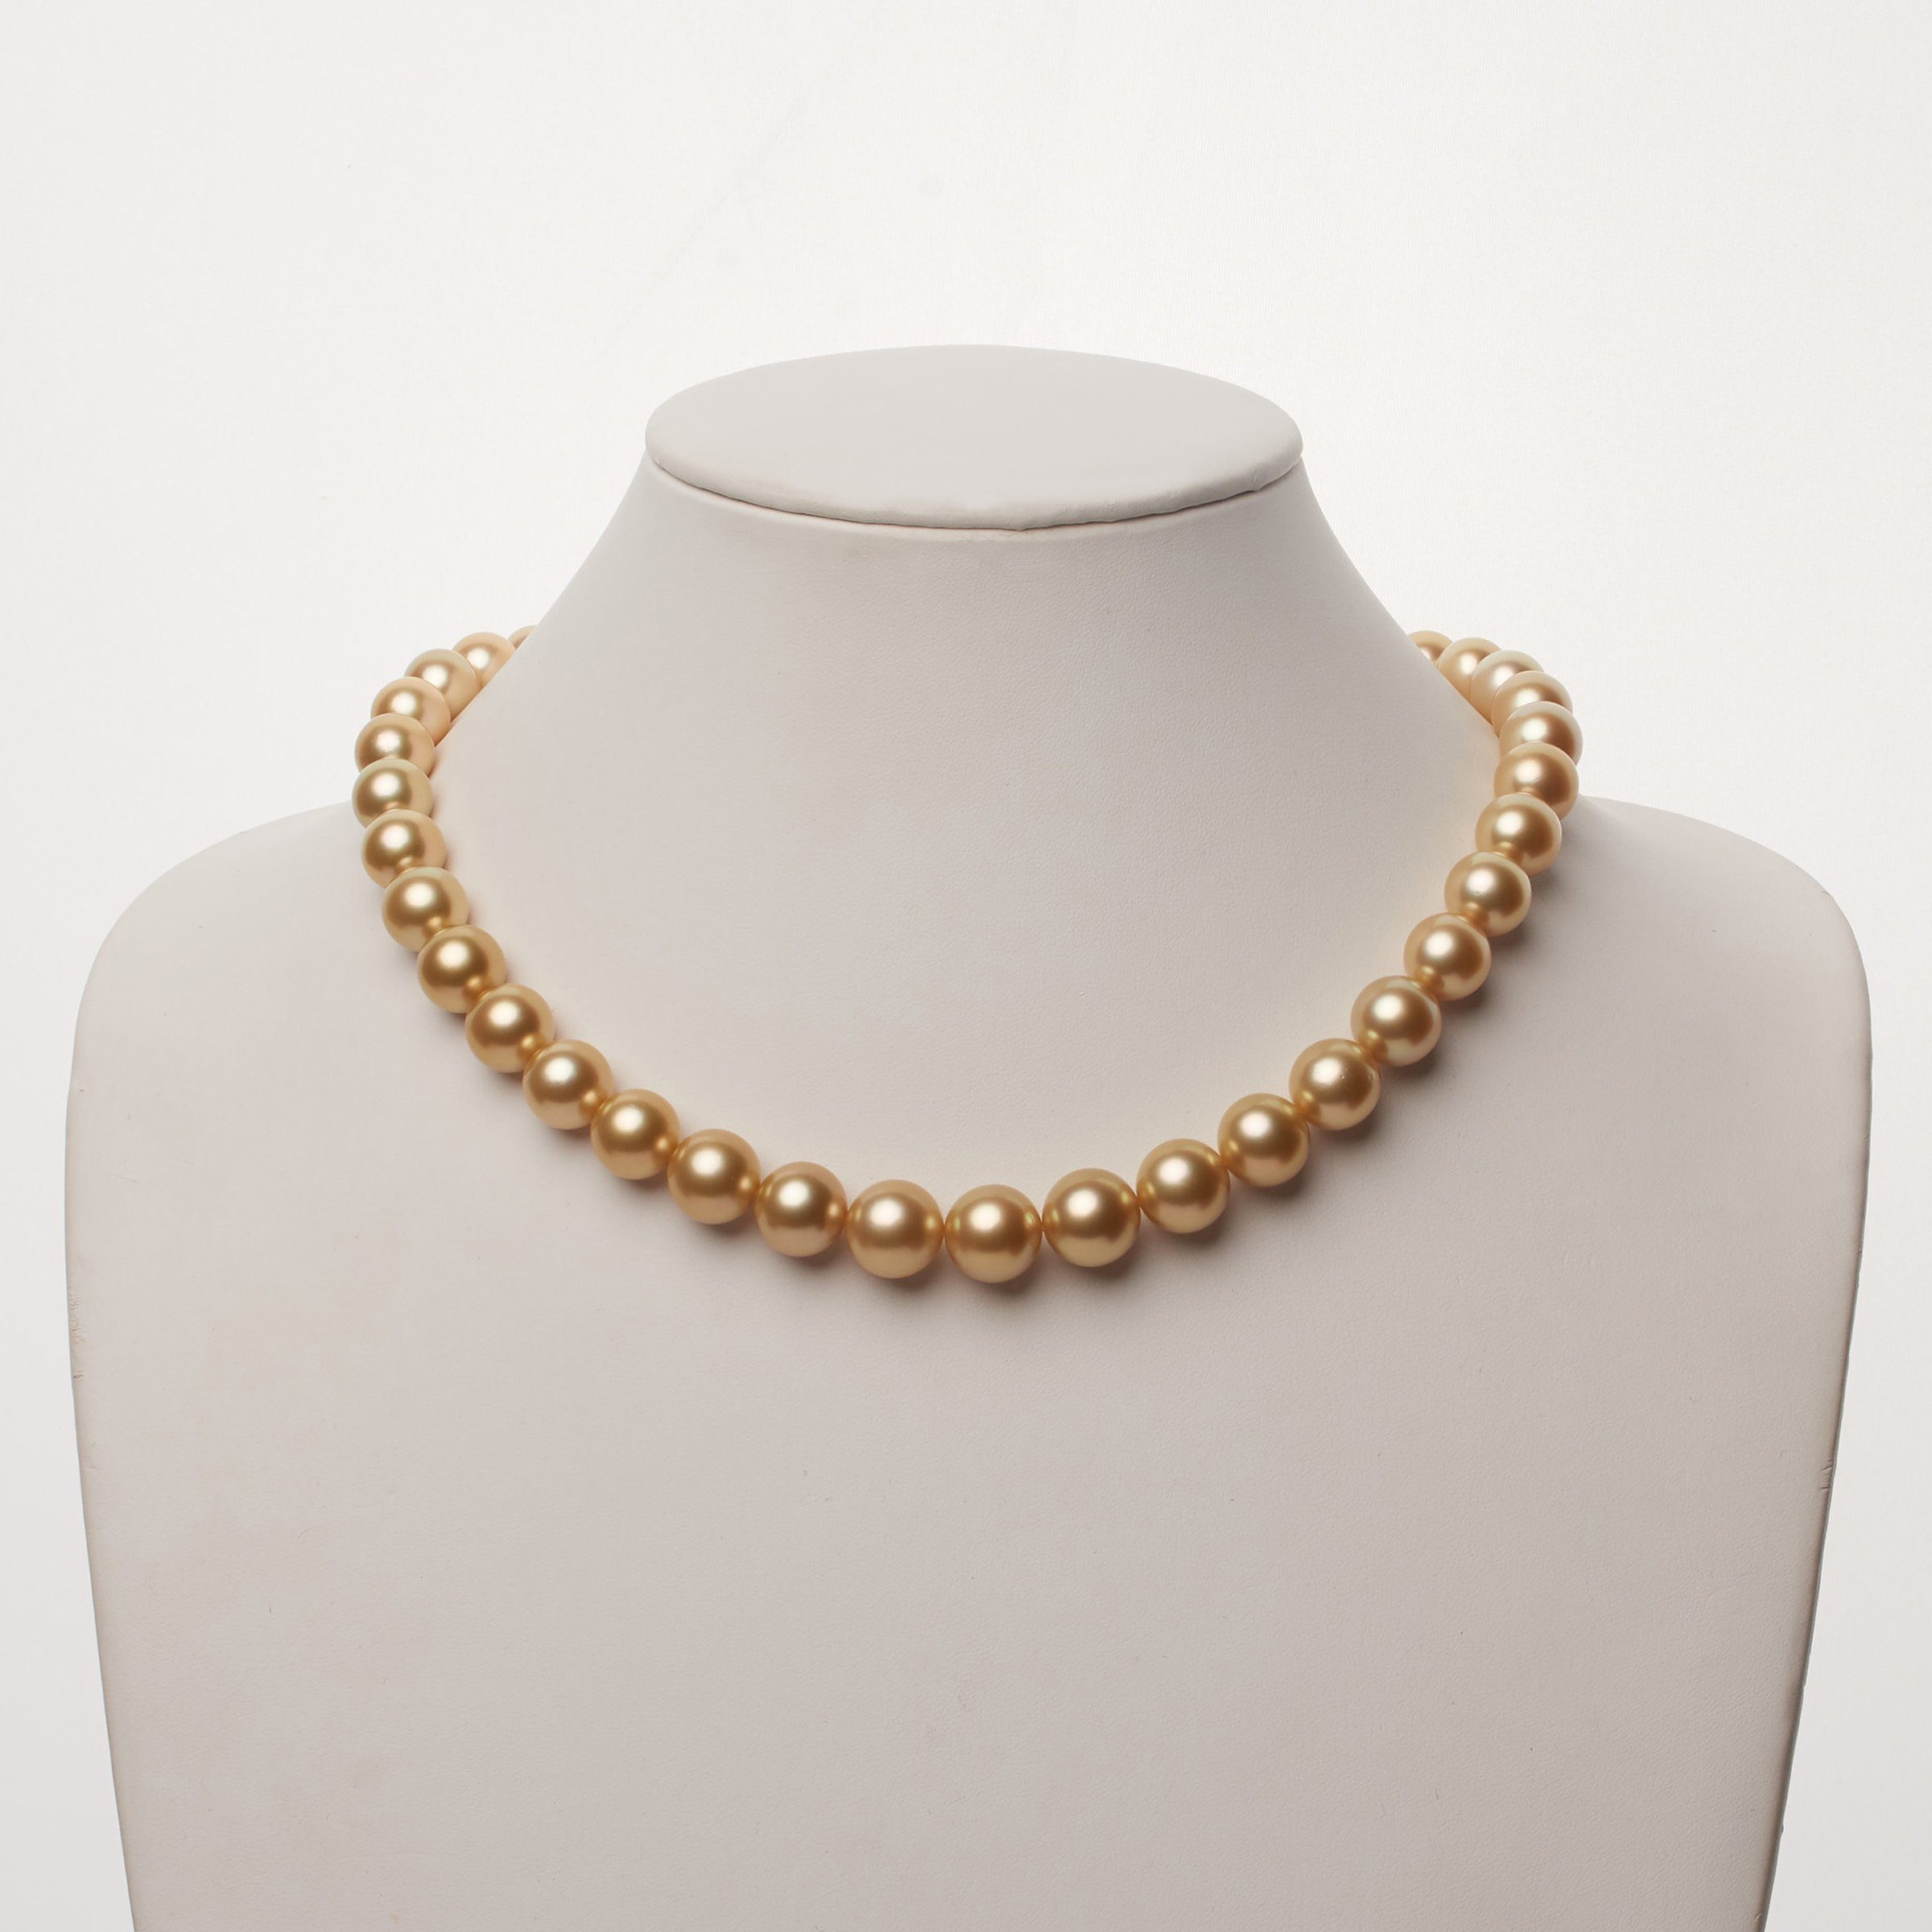 12.1-15.2 mm AAA Golden South Sea Round Pearl Necklace